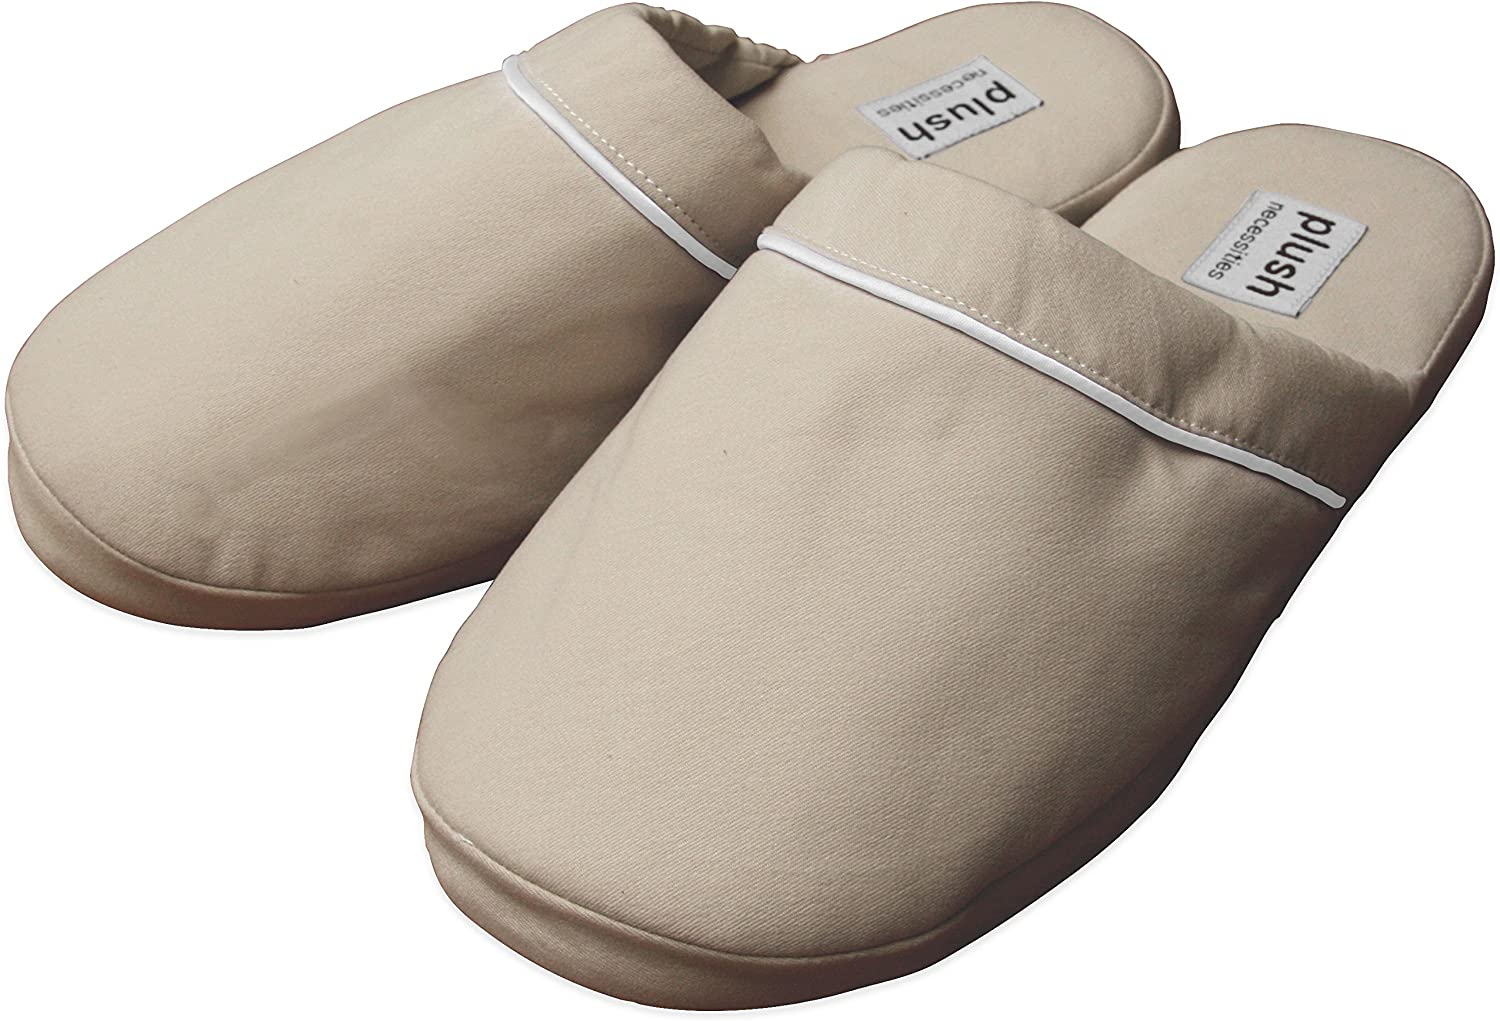 Limited Sales for sale time sale The Luxe Slippers - Microfiber Brushed